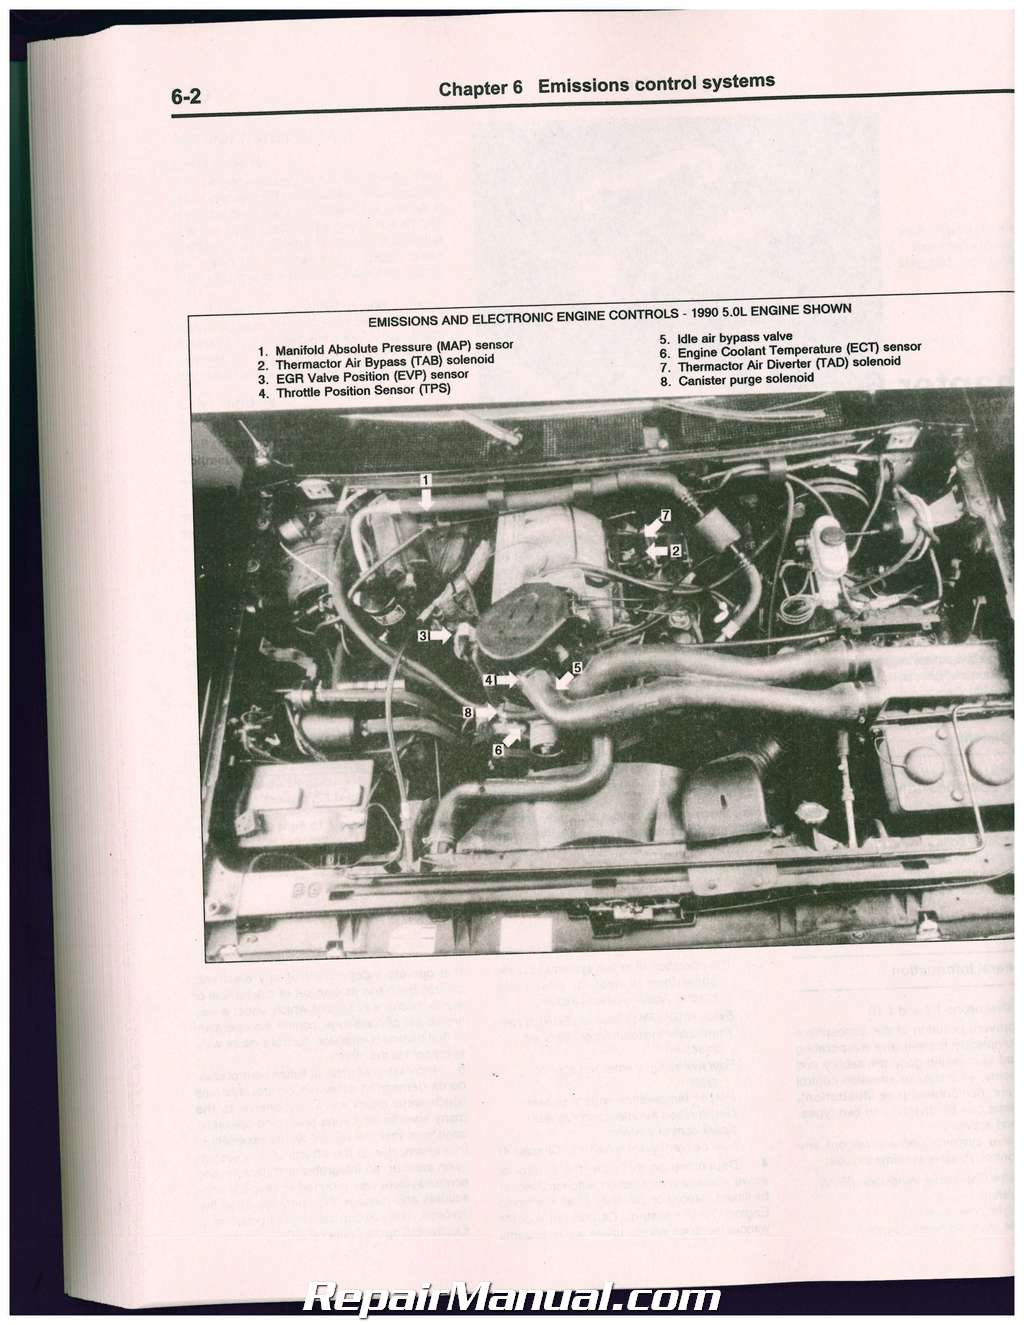 1985 Ford Bronco Wiring Diagram